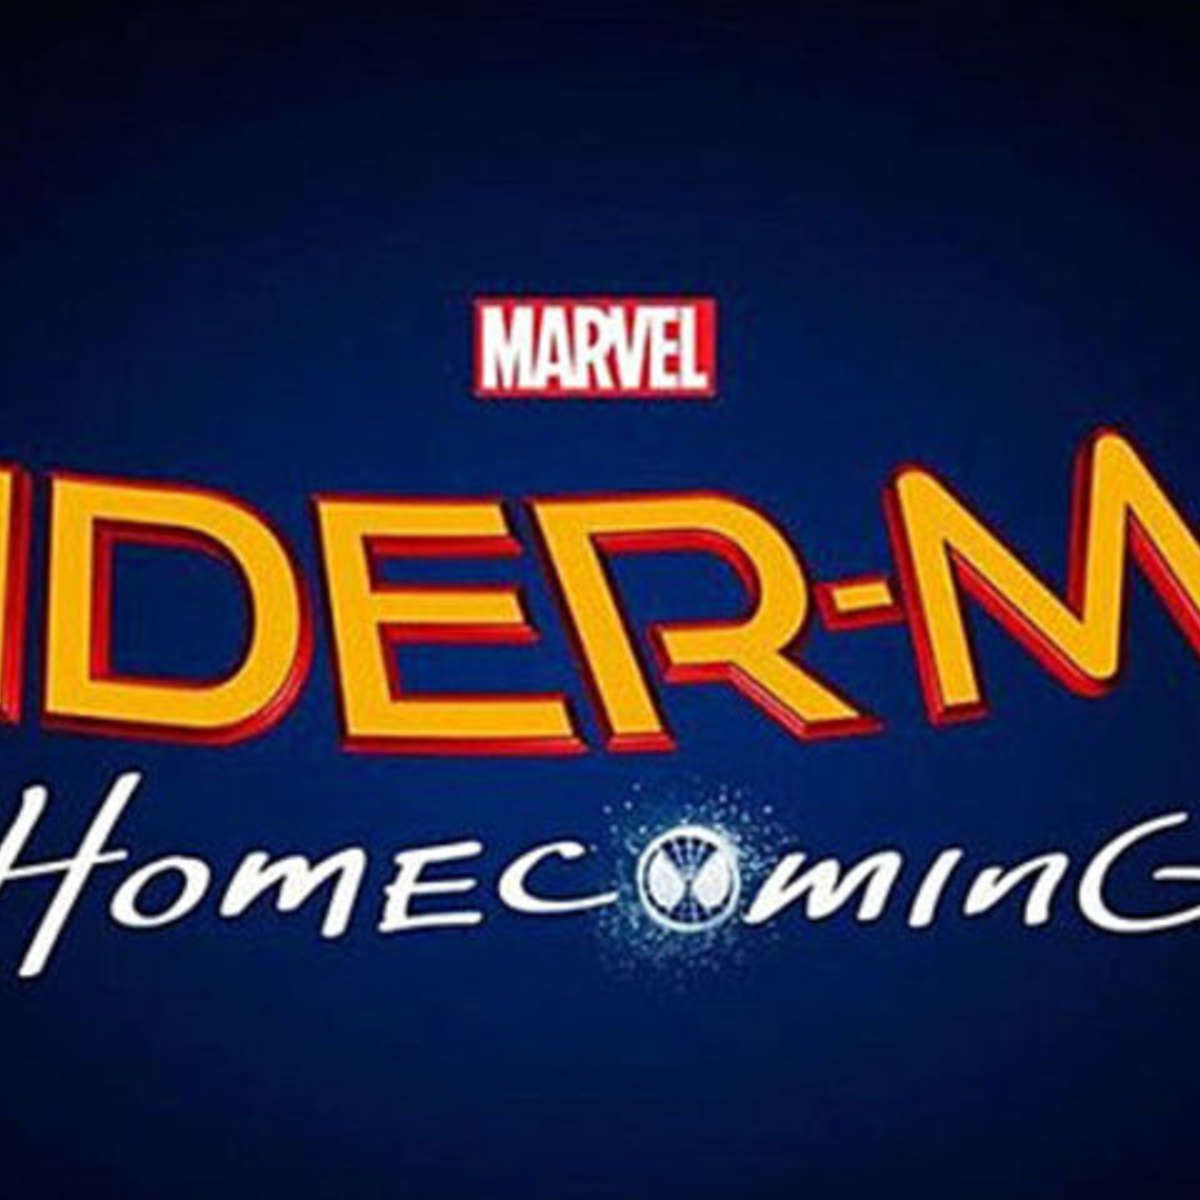 spider-man-homecoming-logo-pic_0.jpg